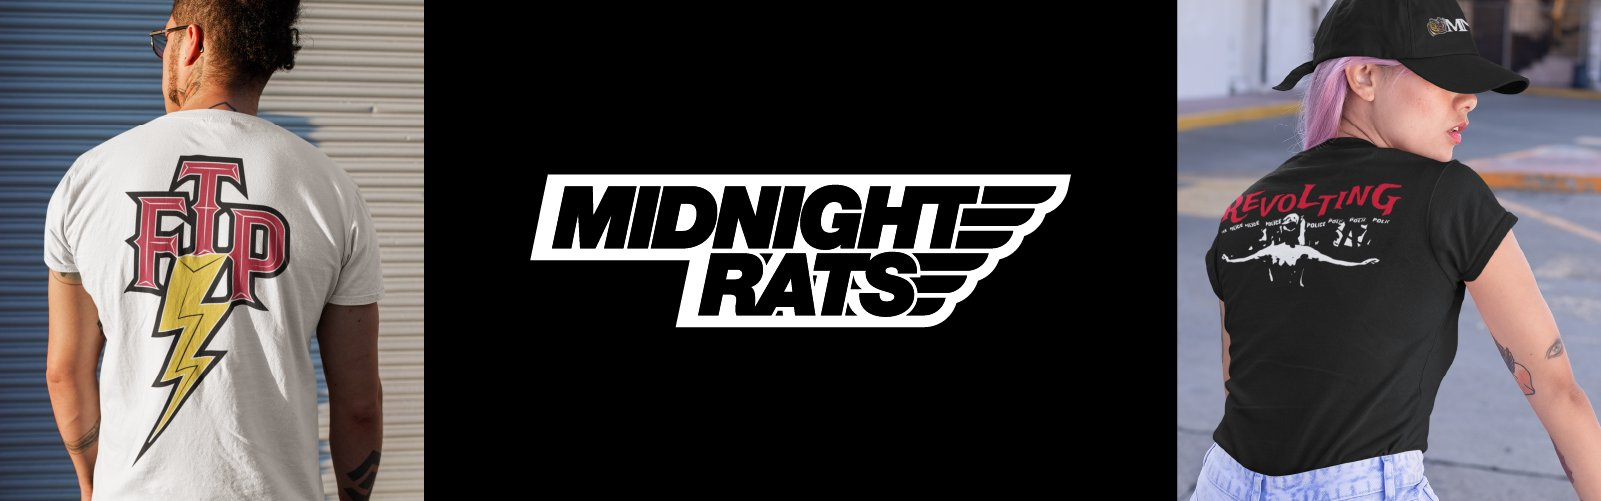 MIDNIGHT RATS